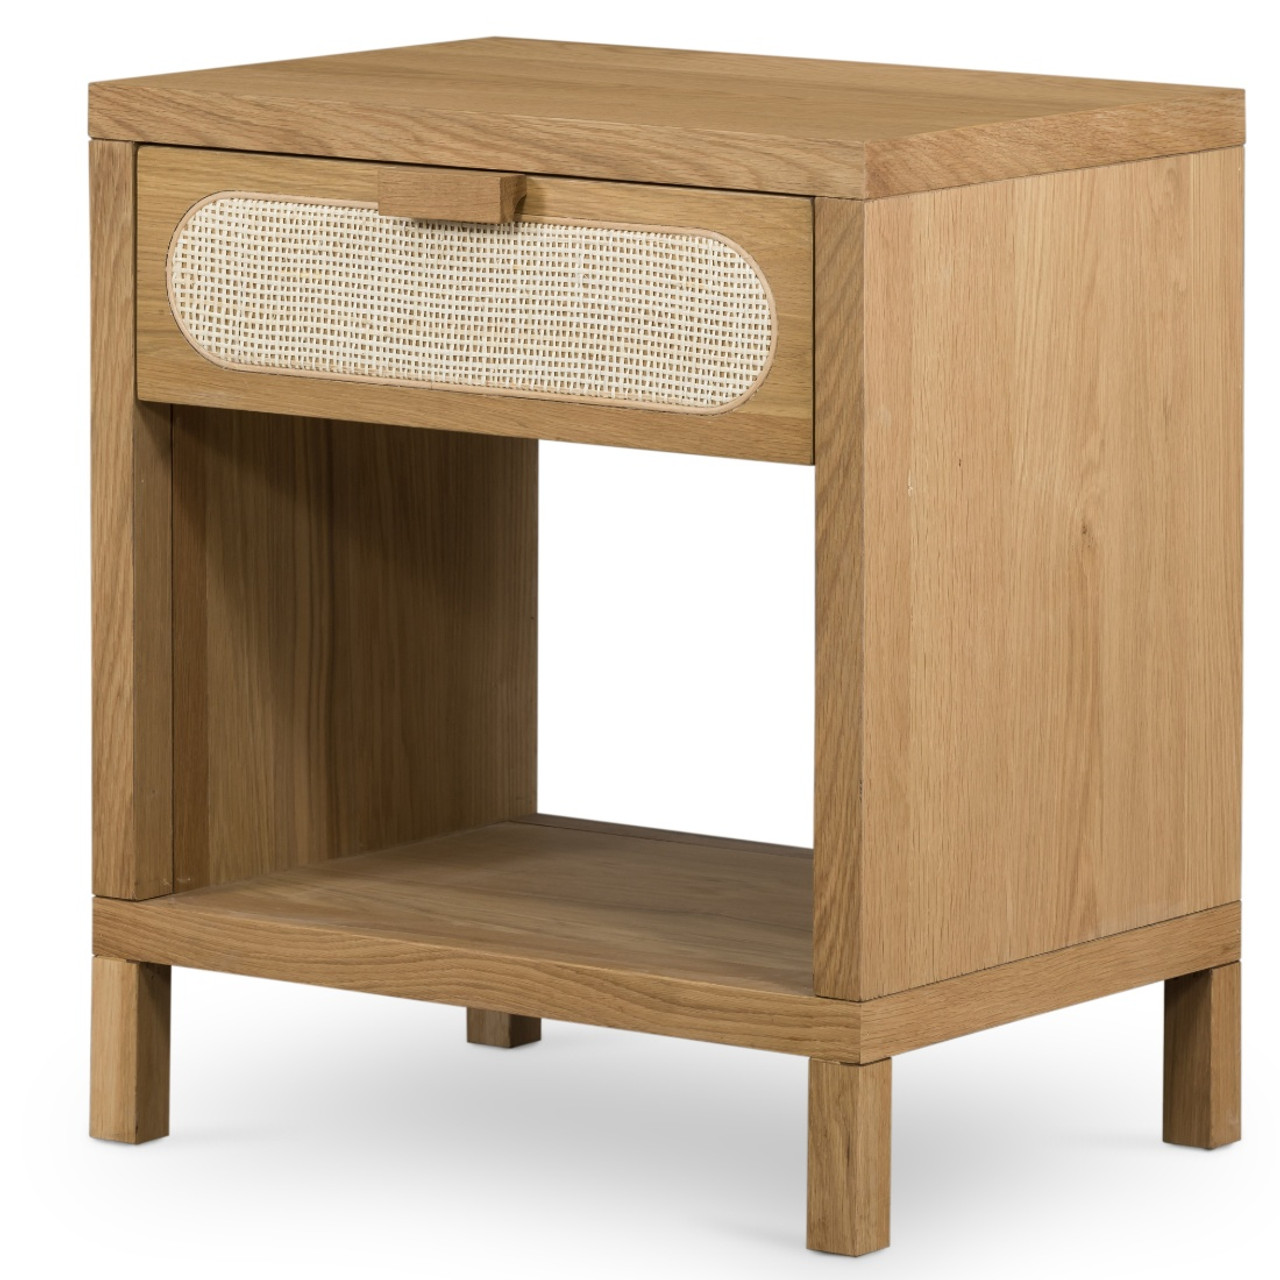 Allegra Woven Cane 1 Drawer Oak Wood Nightstand Zin Home